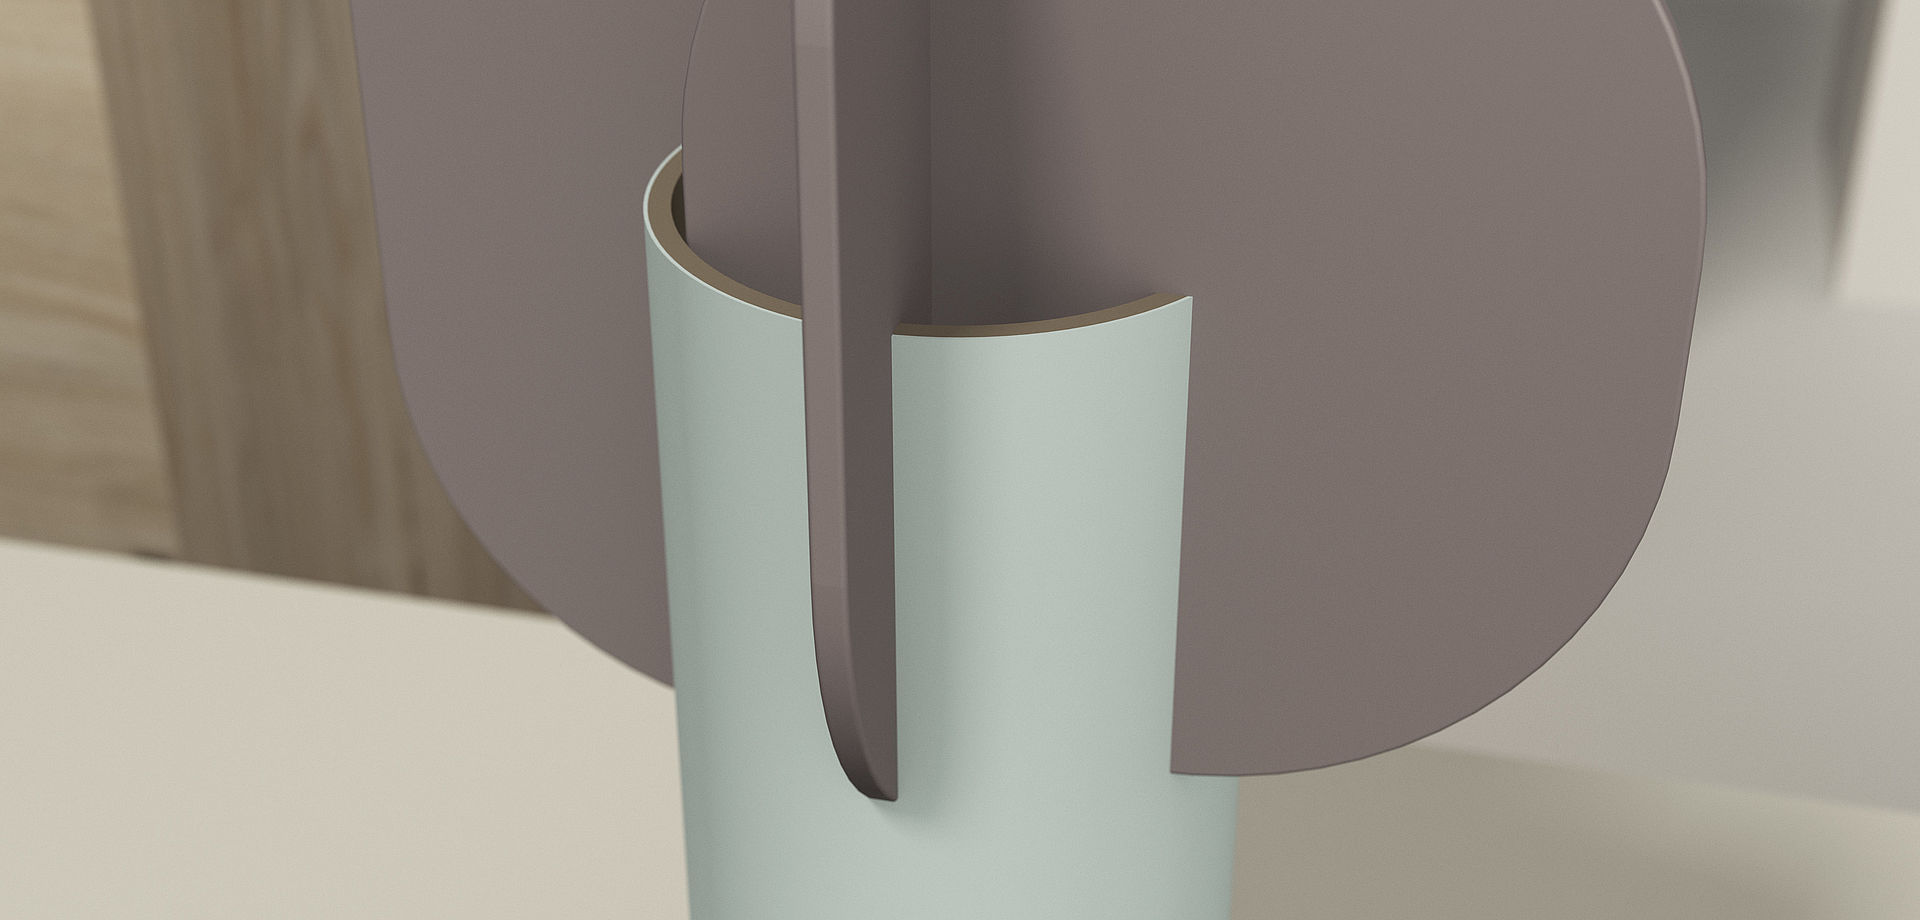 /fileadmin/surteco/produkte/finishfolie/Finish-Folien3_CloseUp_Ummantelung1.jpg